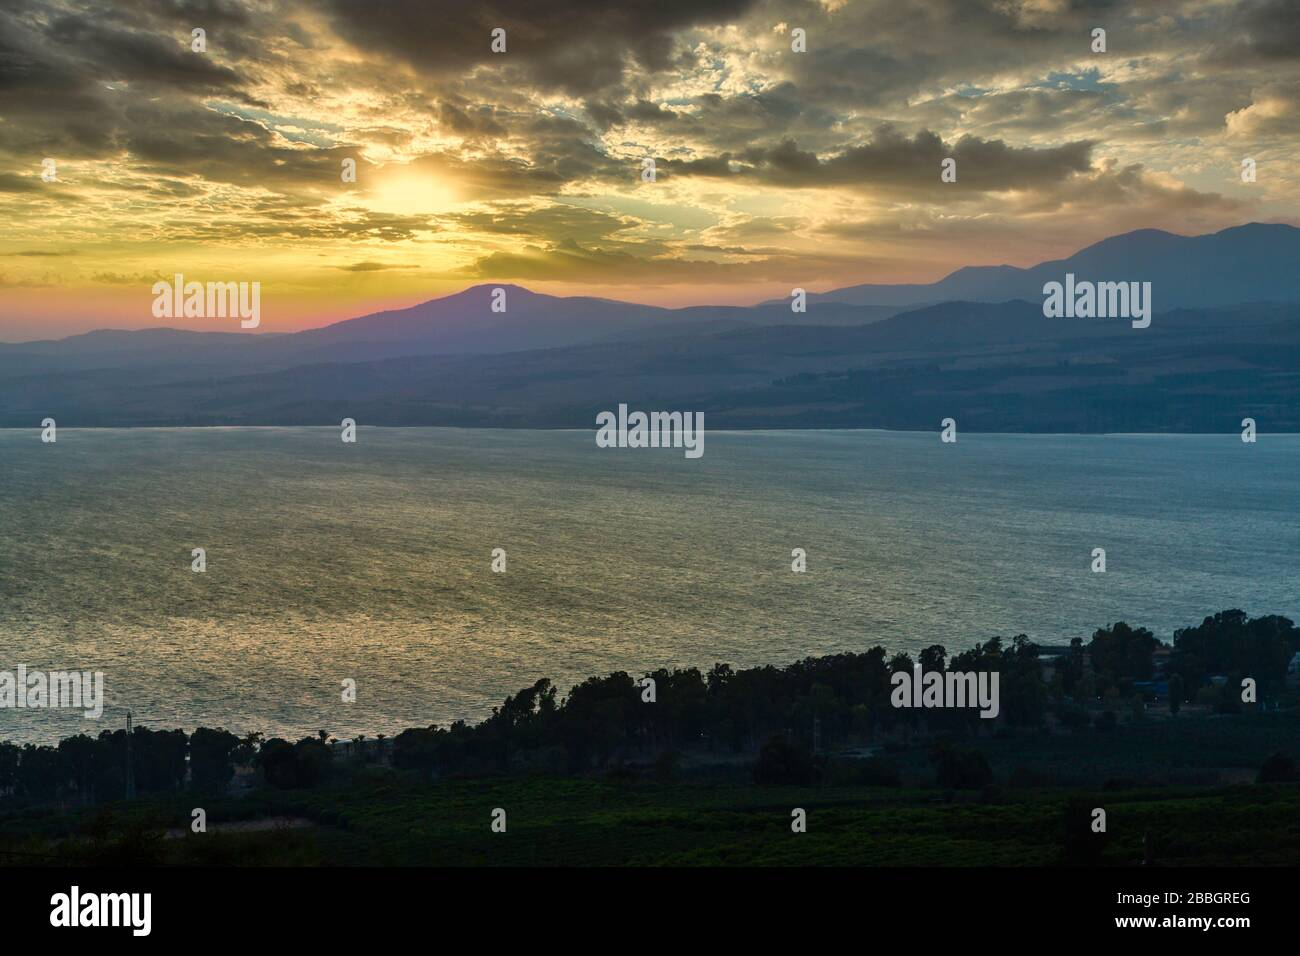 Sunset over the Sea of Galilee from the Golan Heights, Israel, Middle East. Stock Photo